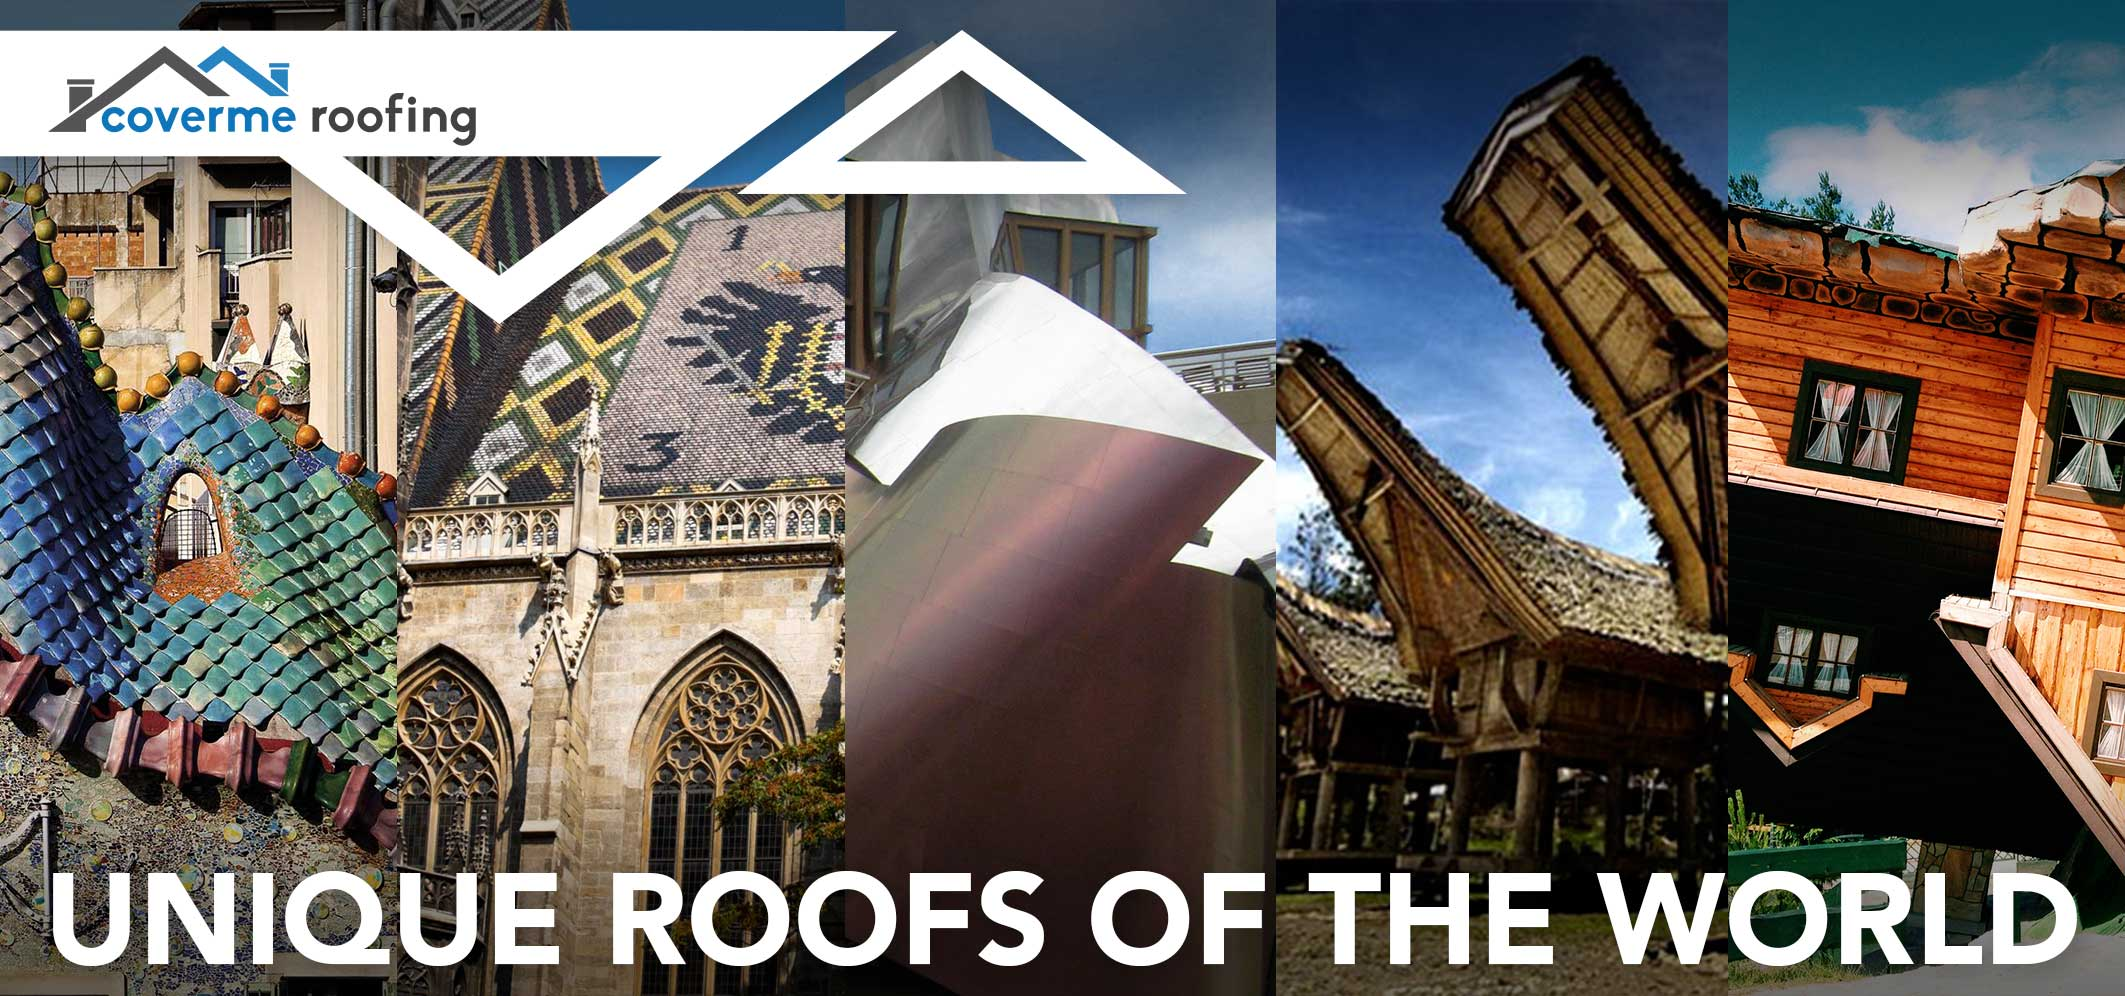 Thereu0027s ... & Unique Roofs of the World - Cover Me Roofing memphite.com